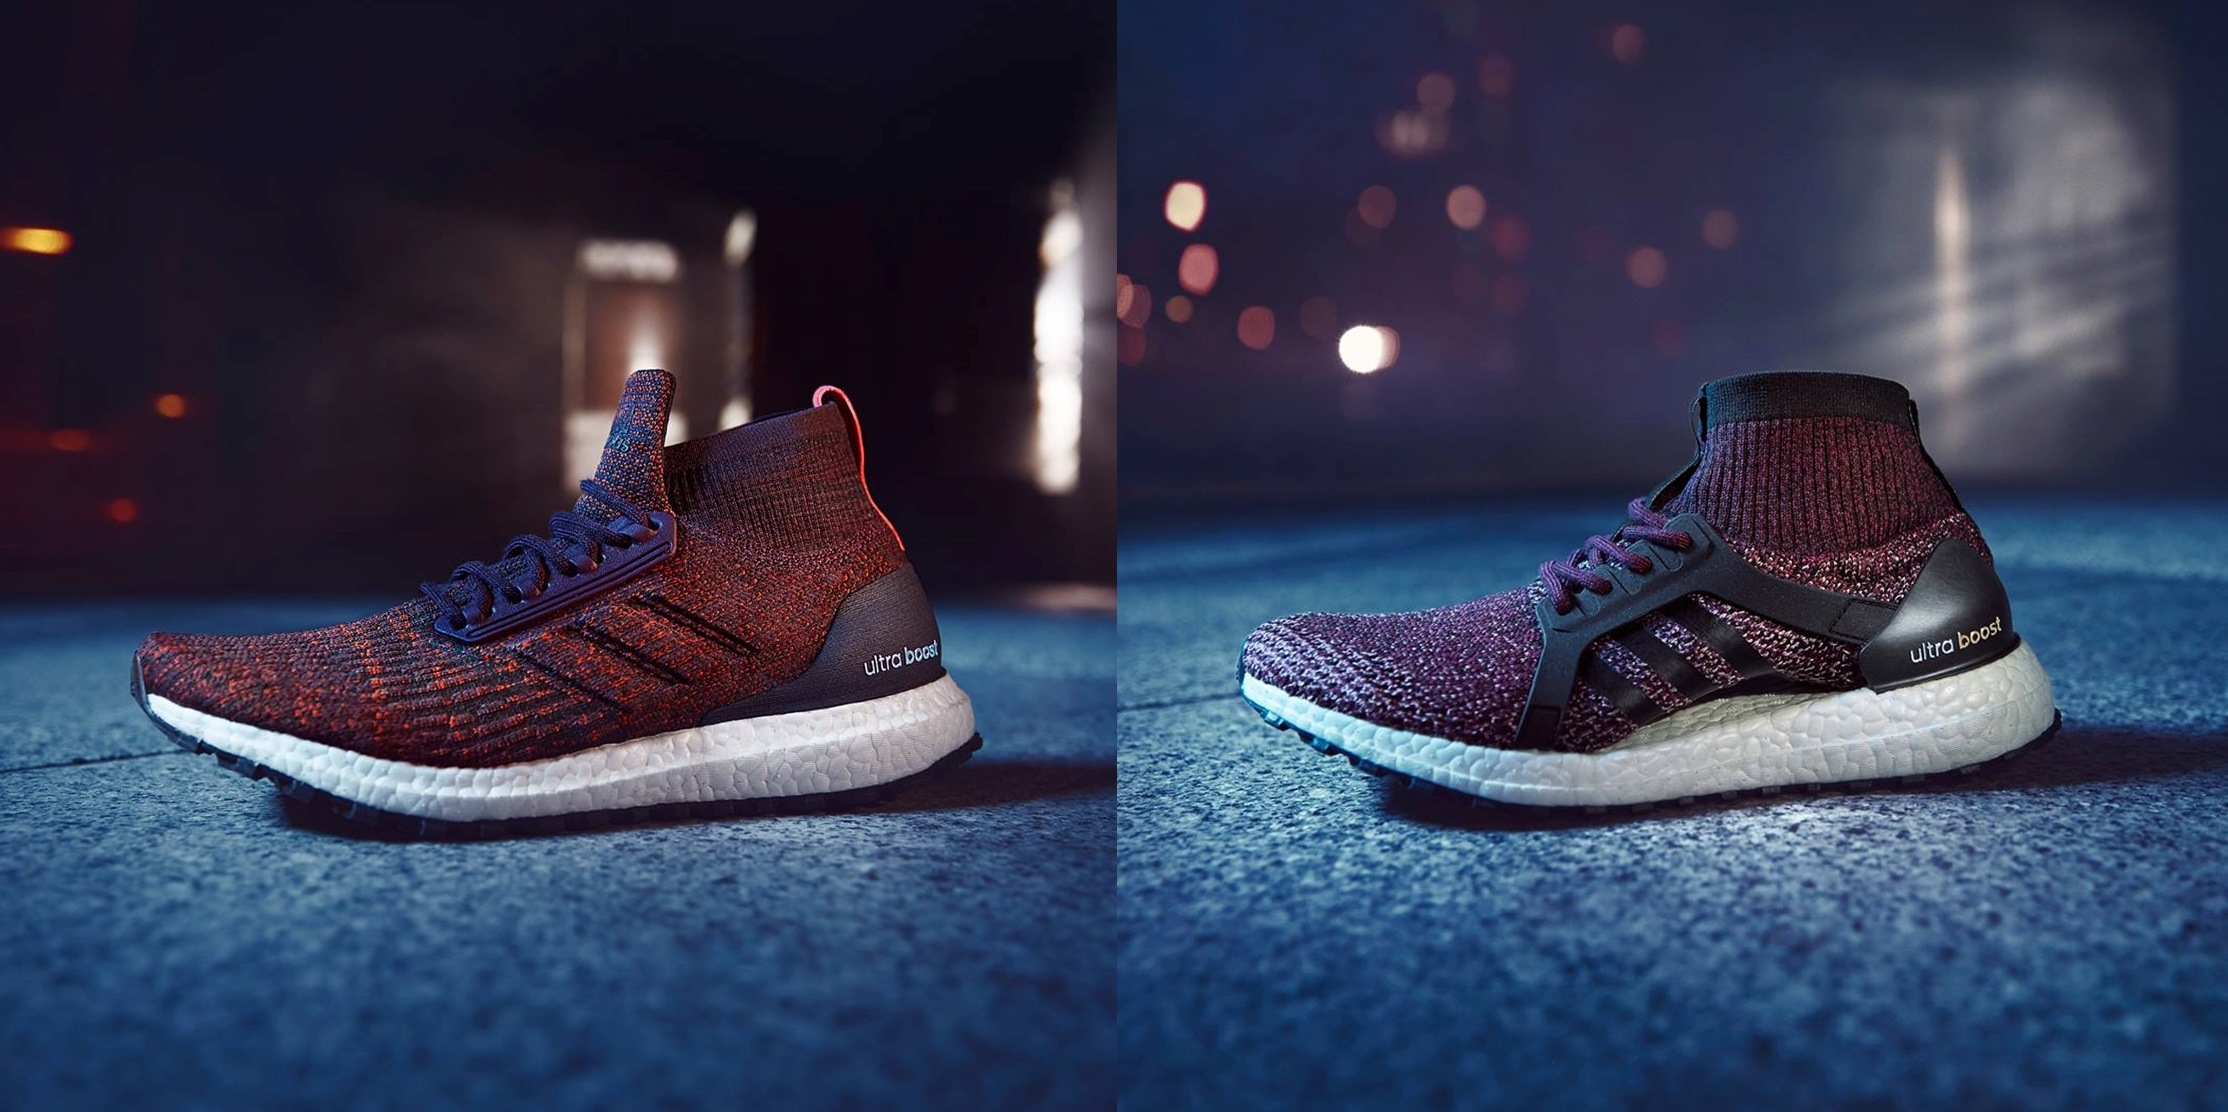 Sale GIàY TH THAO ULTRA BOOST 4.0 TR NG Q002 deal s c